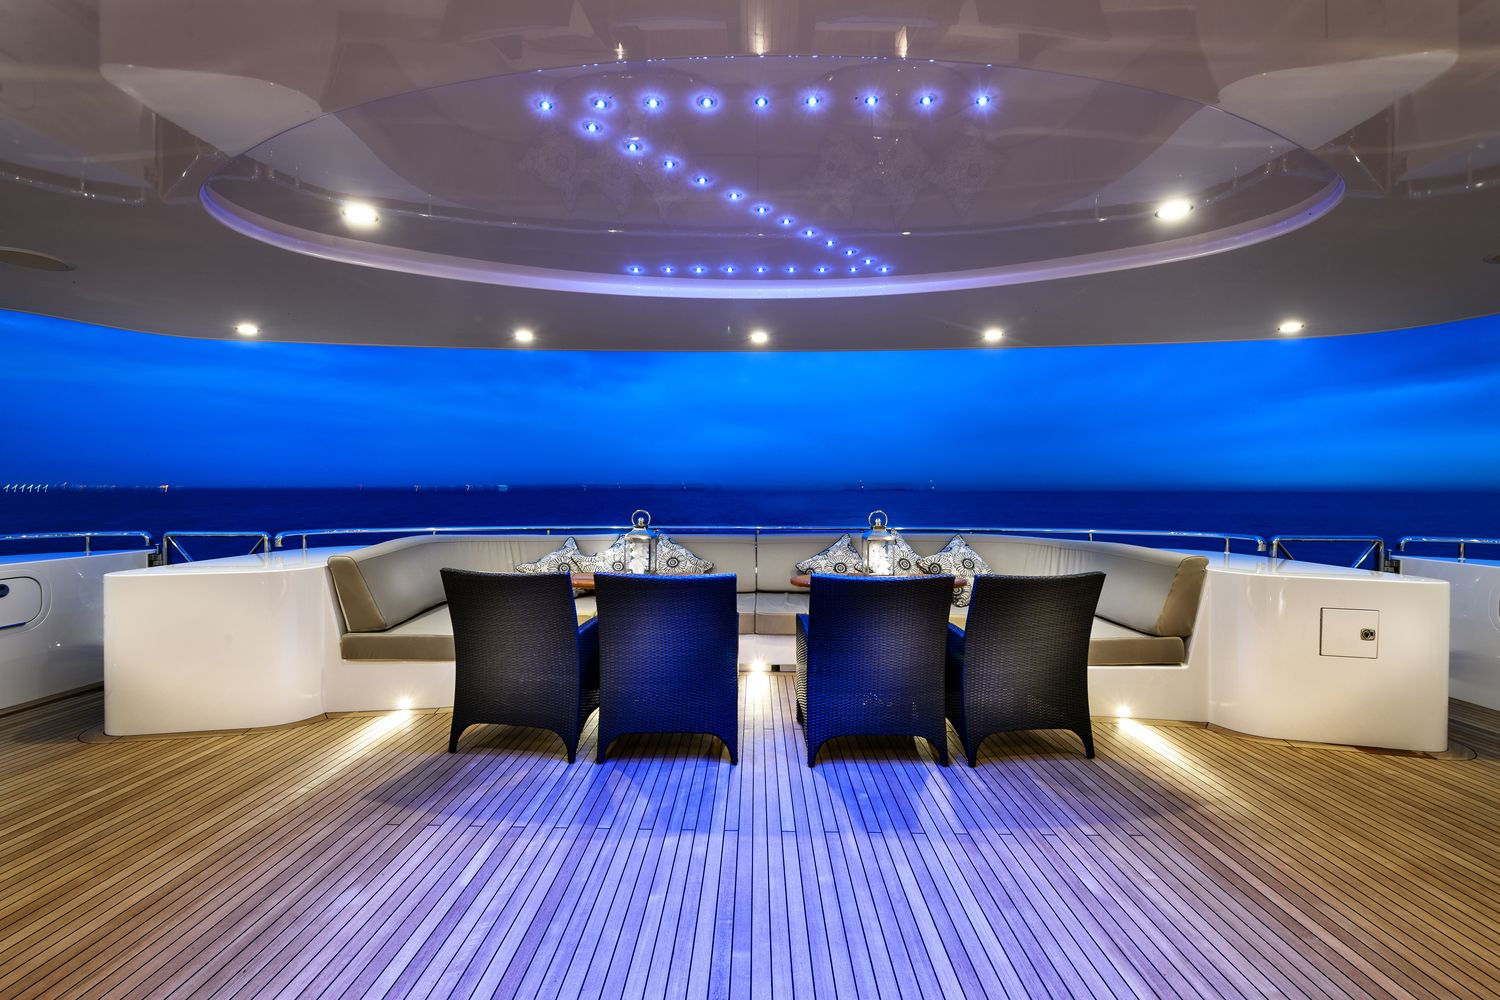 Luxury superyacht keyla interior by hot lab luxury yacht charter - The Outdoor Terrace And Spa Off The Master Bedroom Onboard The Wonderful Private Superyacht Zenith Designed By Id Studios Pyrmont Pinterest Outdoor